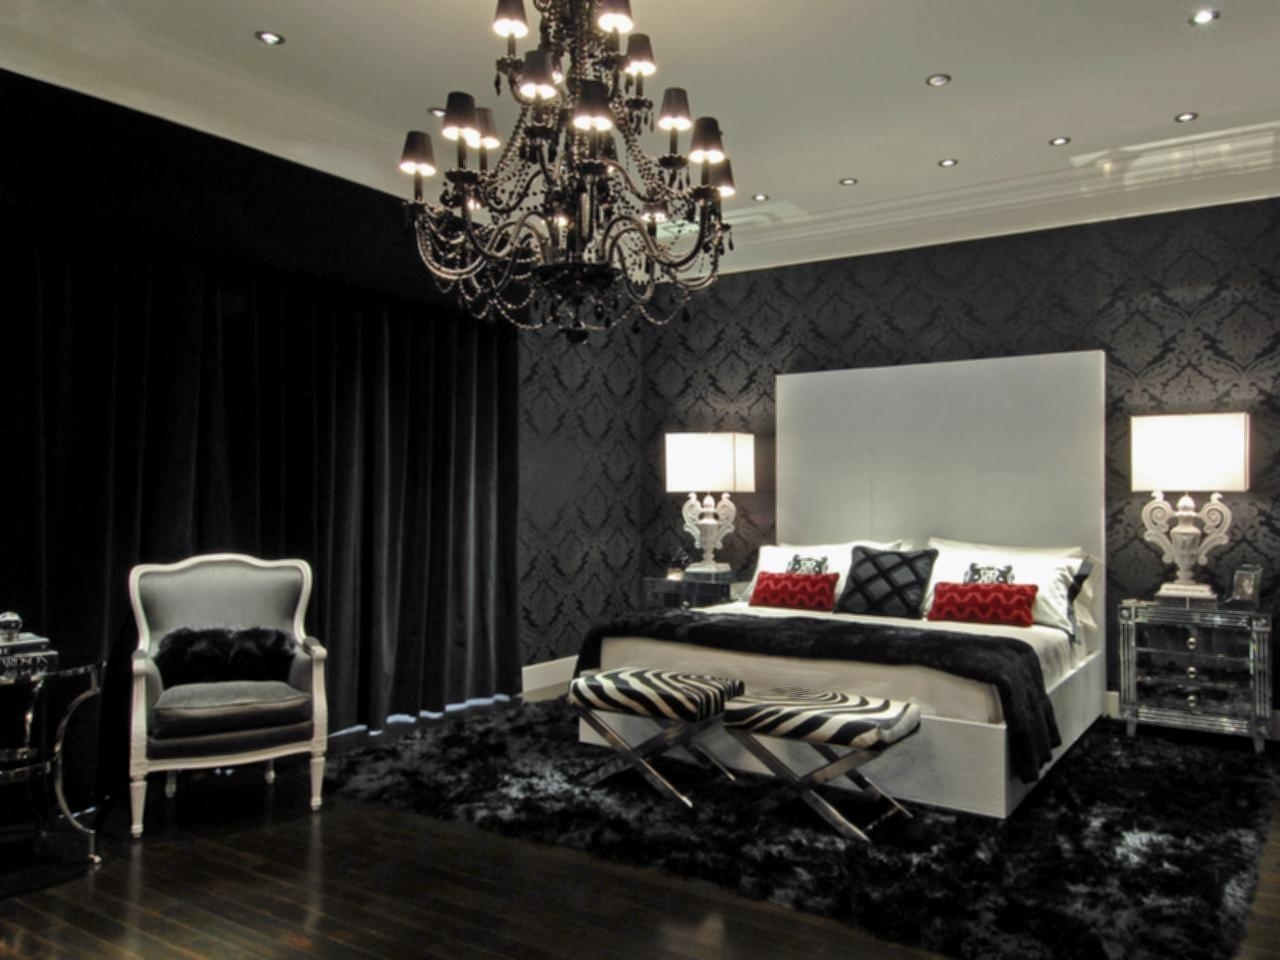 Black Chandelier Bedroom Regarding Recent Black Chandelier Bedroom – House Designs Photos (View 10 of 20)